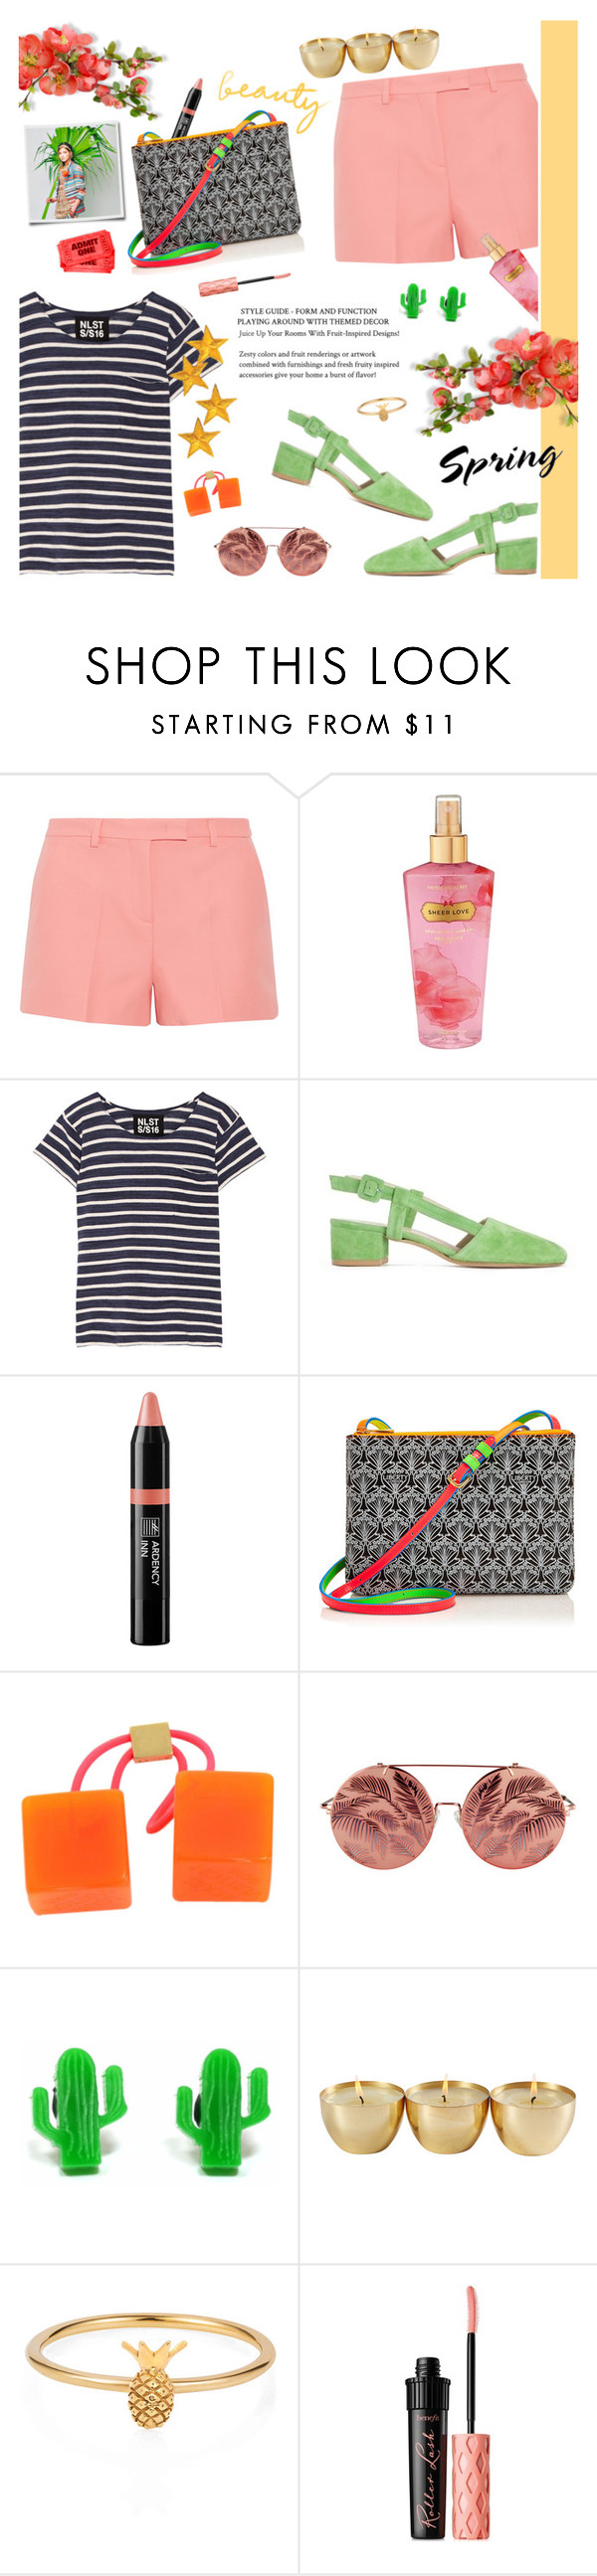 """""""Marine Layer: Striped Shirts"""" by bklana ❤ liked on Polyvore featuring Emilio Pucci, Victoria's Secret, NLST, Maryam Nassir Zadeh, Ardency Inn, Liberty, Louis Vuitton, Matthew Williamson, Finest Imaginary and Lee Renee"""